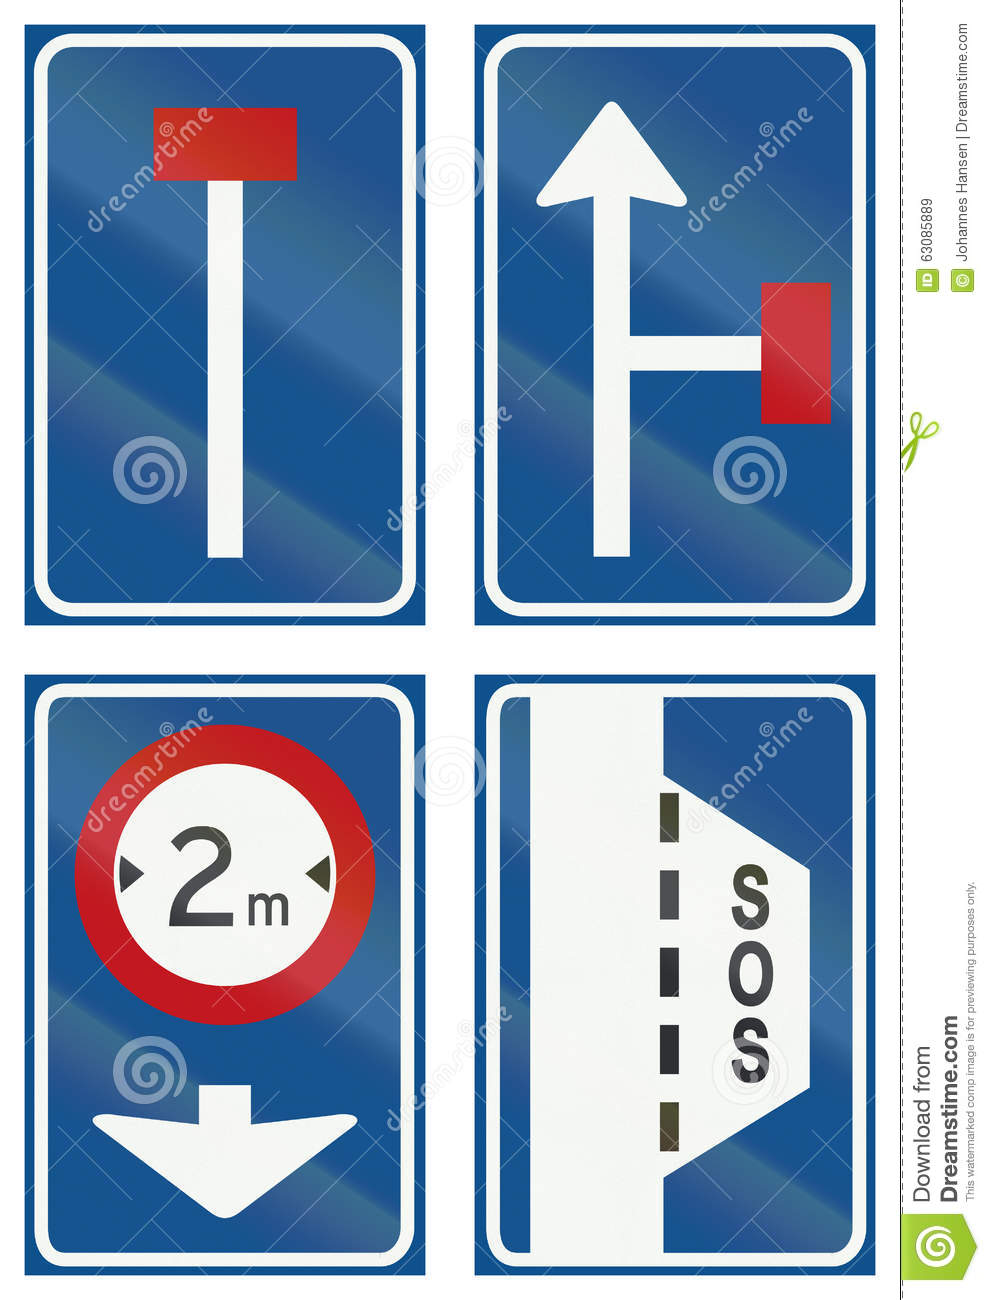 Download Collection De Panneaux Routiers Informationnels Néerlandais Illustration Stock - Illustration du europe, cercle: 63085889